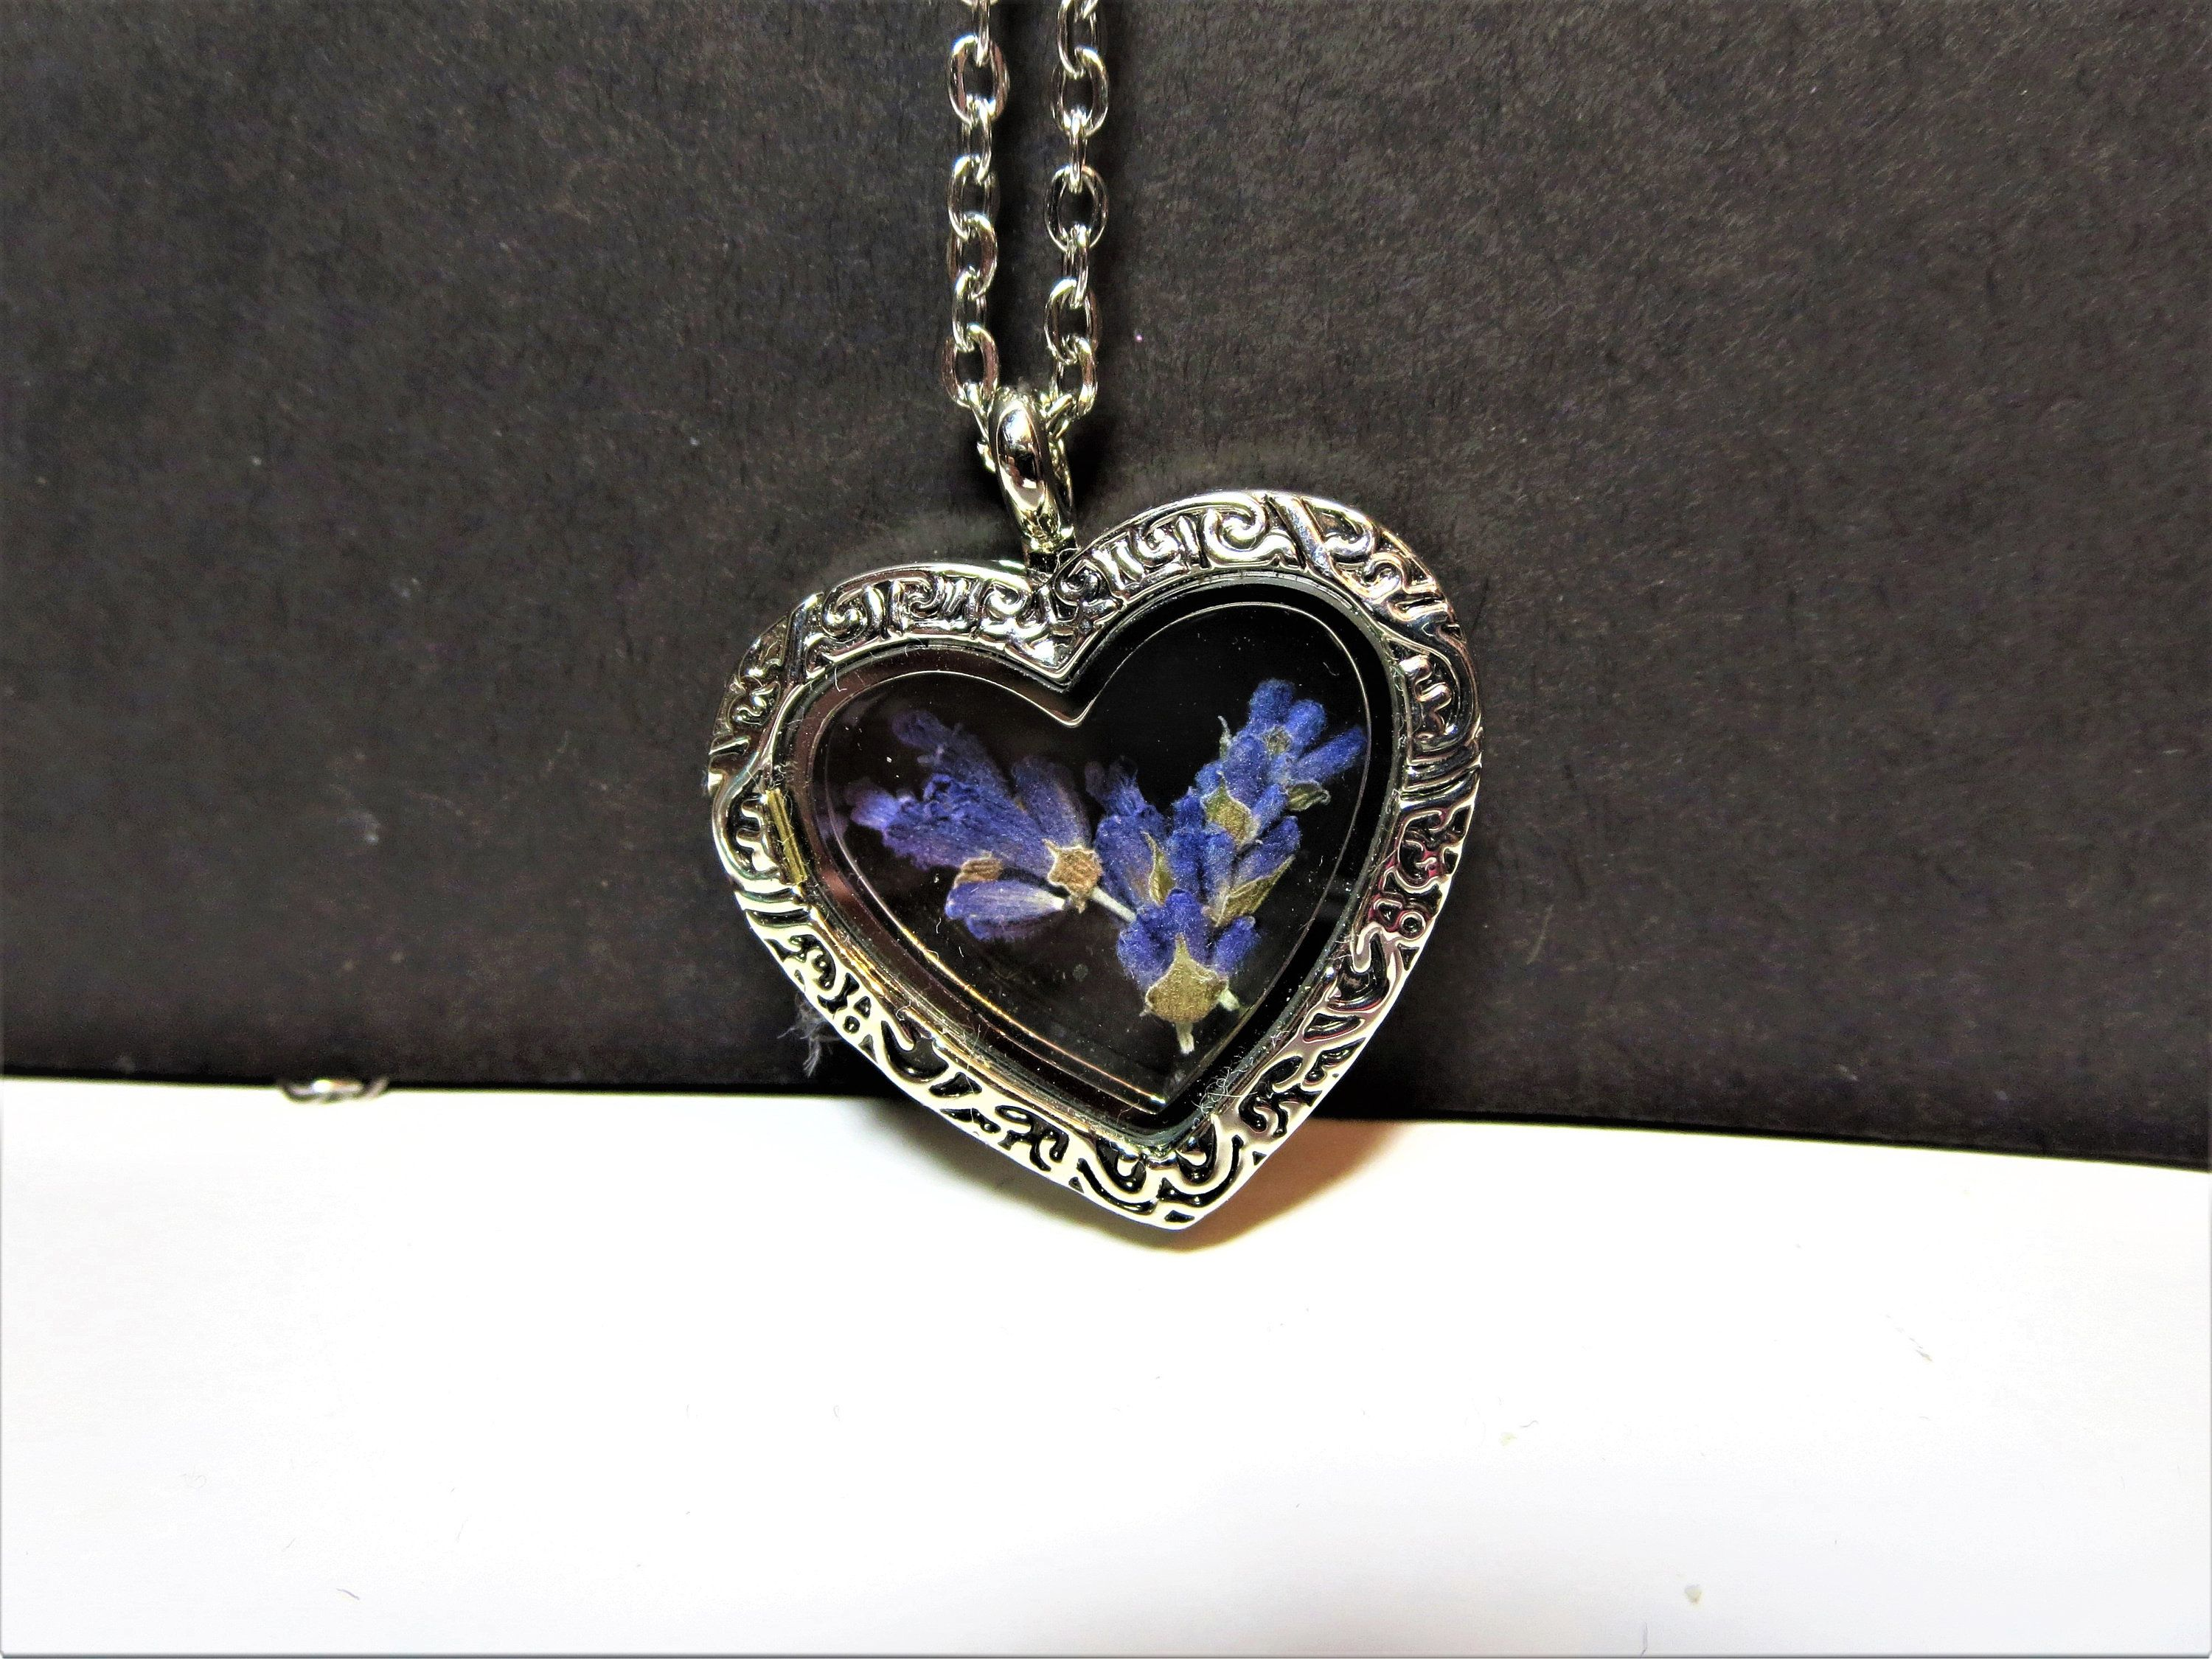 Dried Lavender Pendant Real Flower Necklace For Women Etsy In 2020 Lavender Necklace Pressed Flower Necklace Lavender Pendant